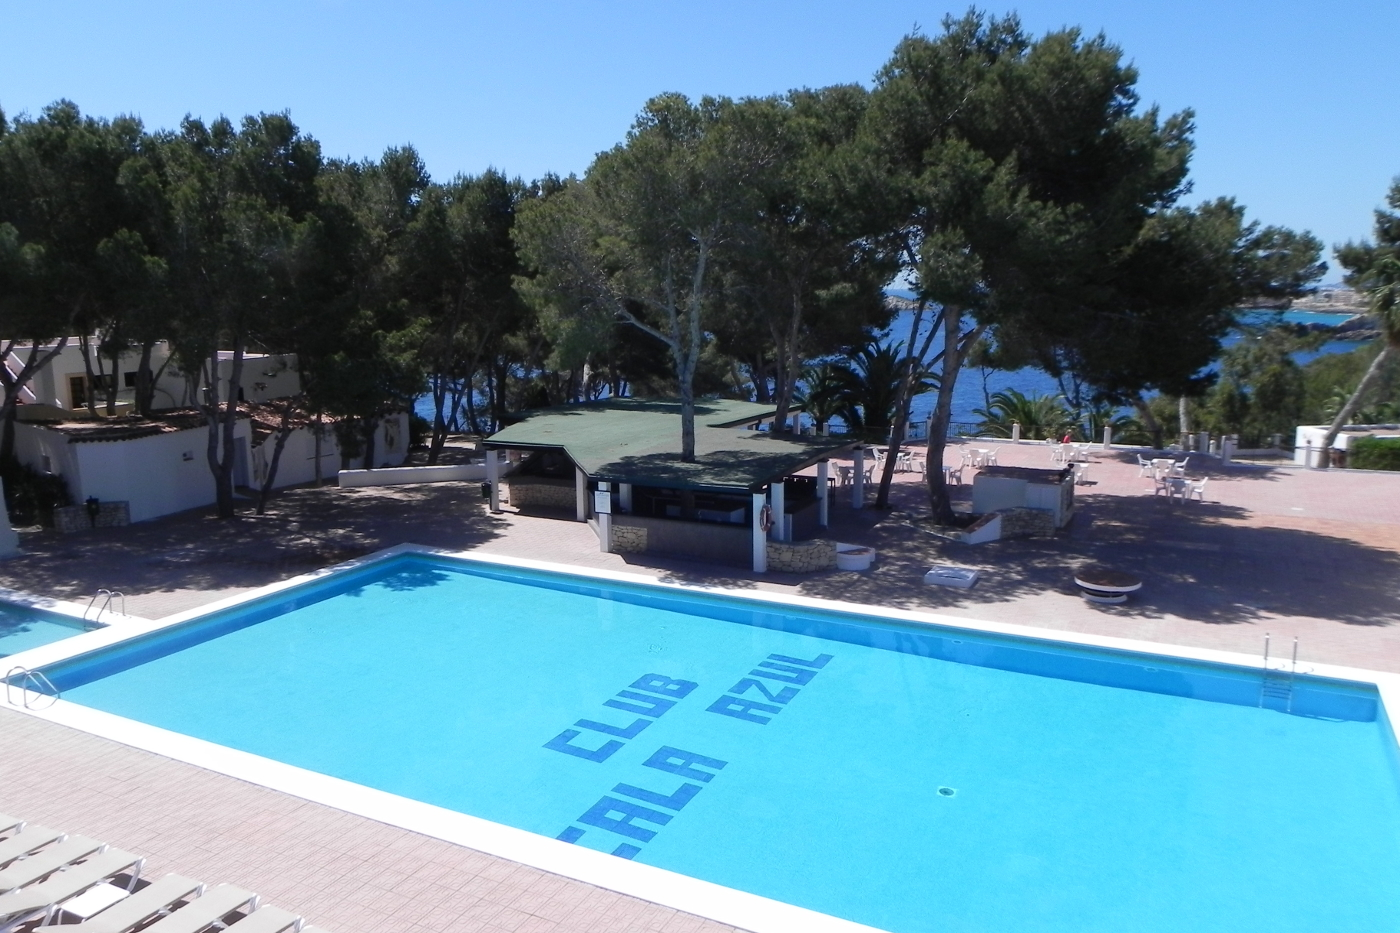 club cala azul swimming pool (3)